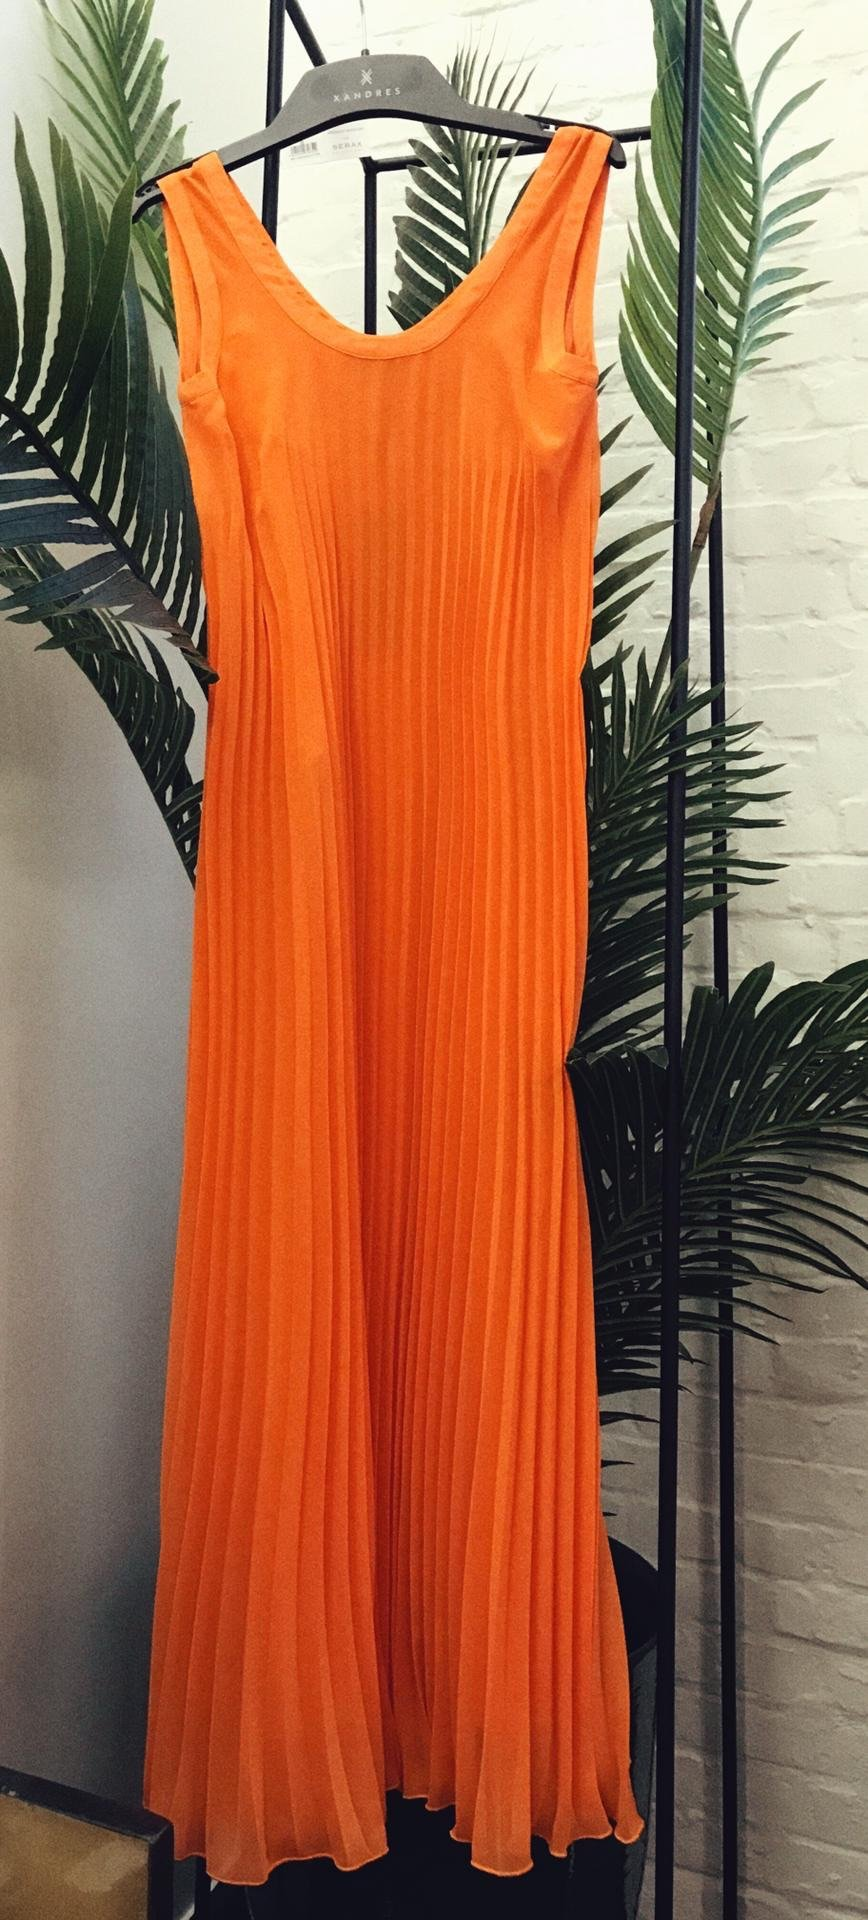 Xandres studio - ido orange pleated dress